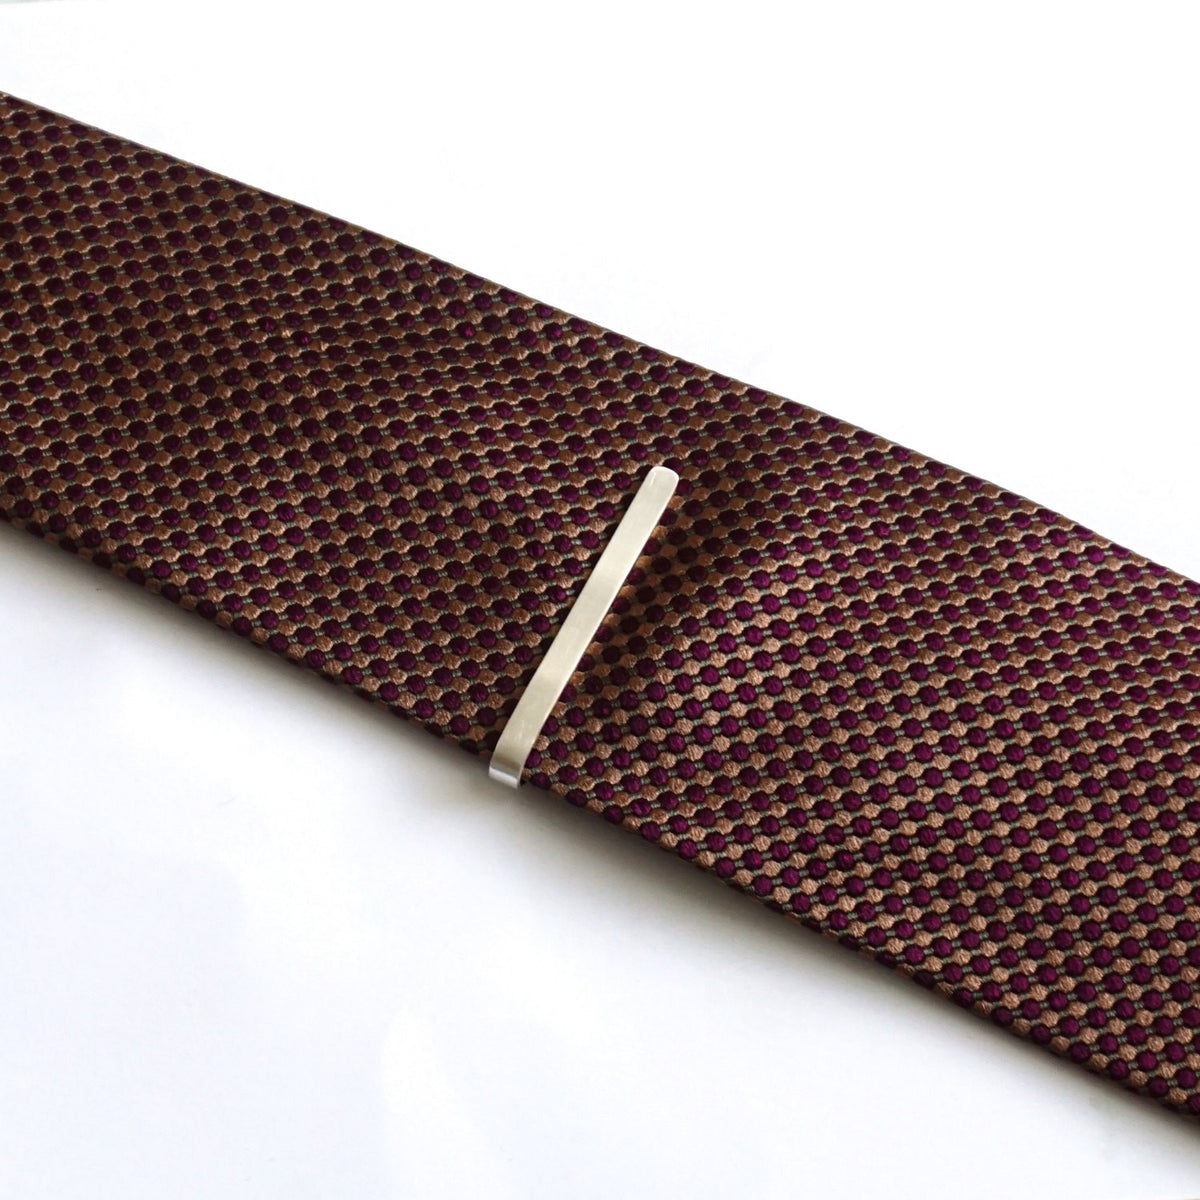 "Classic 2.25"" Sterling Silver Tie Clip - Simple Yet Elegant - 0226 - Virginia Wynne Designs"